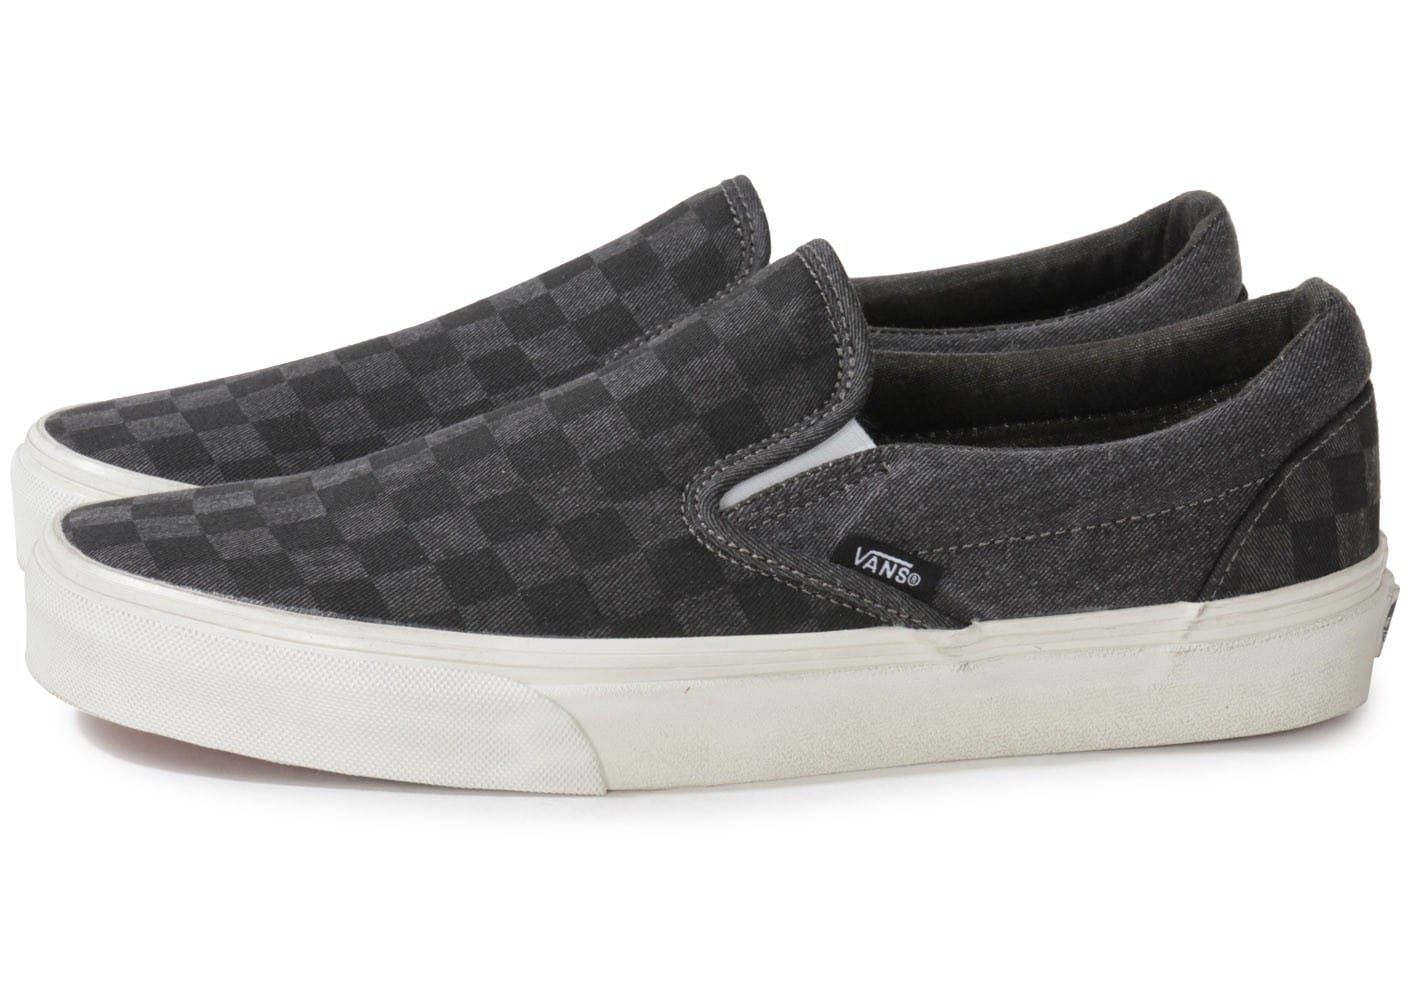 Vans Classic Slip on Damier Grise Chaussures Baskets homme